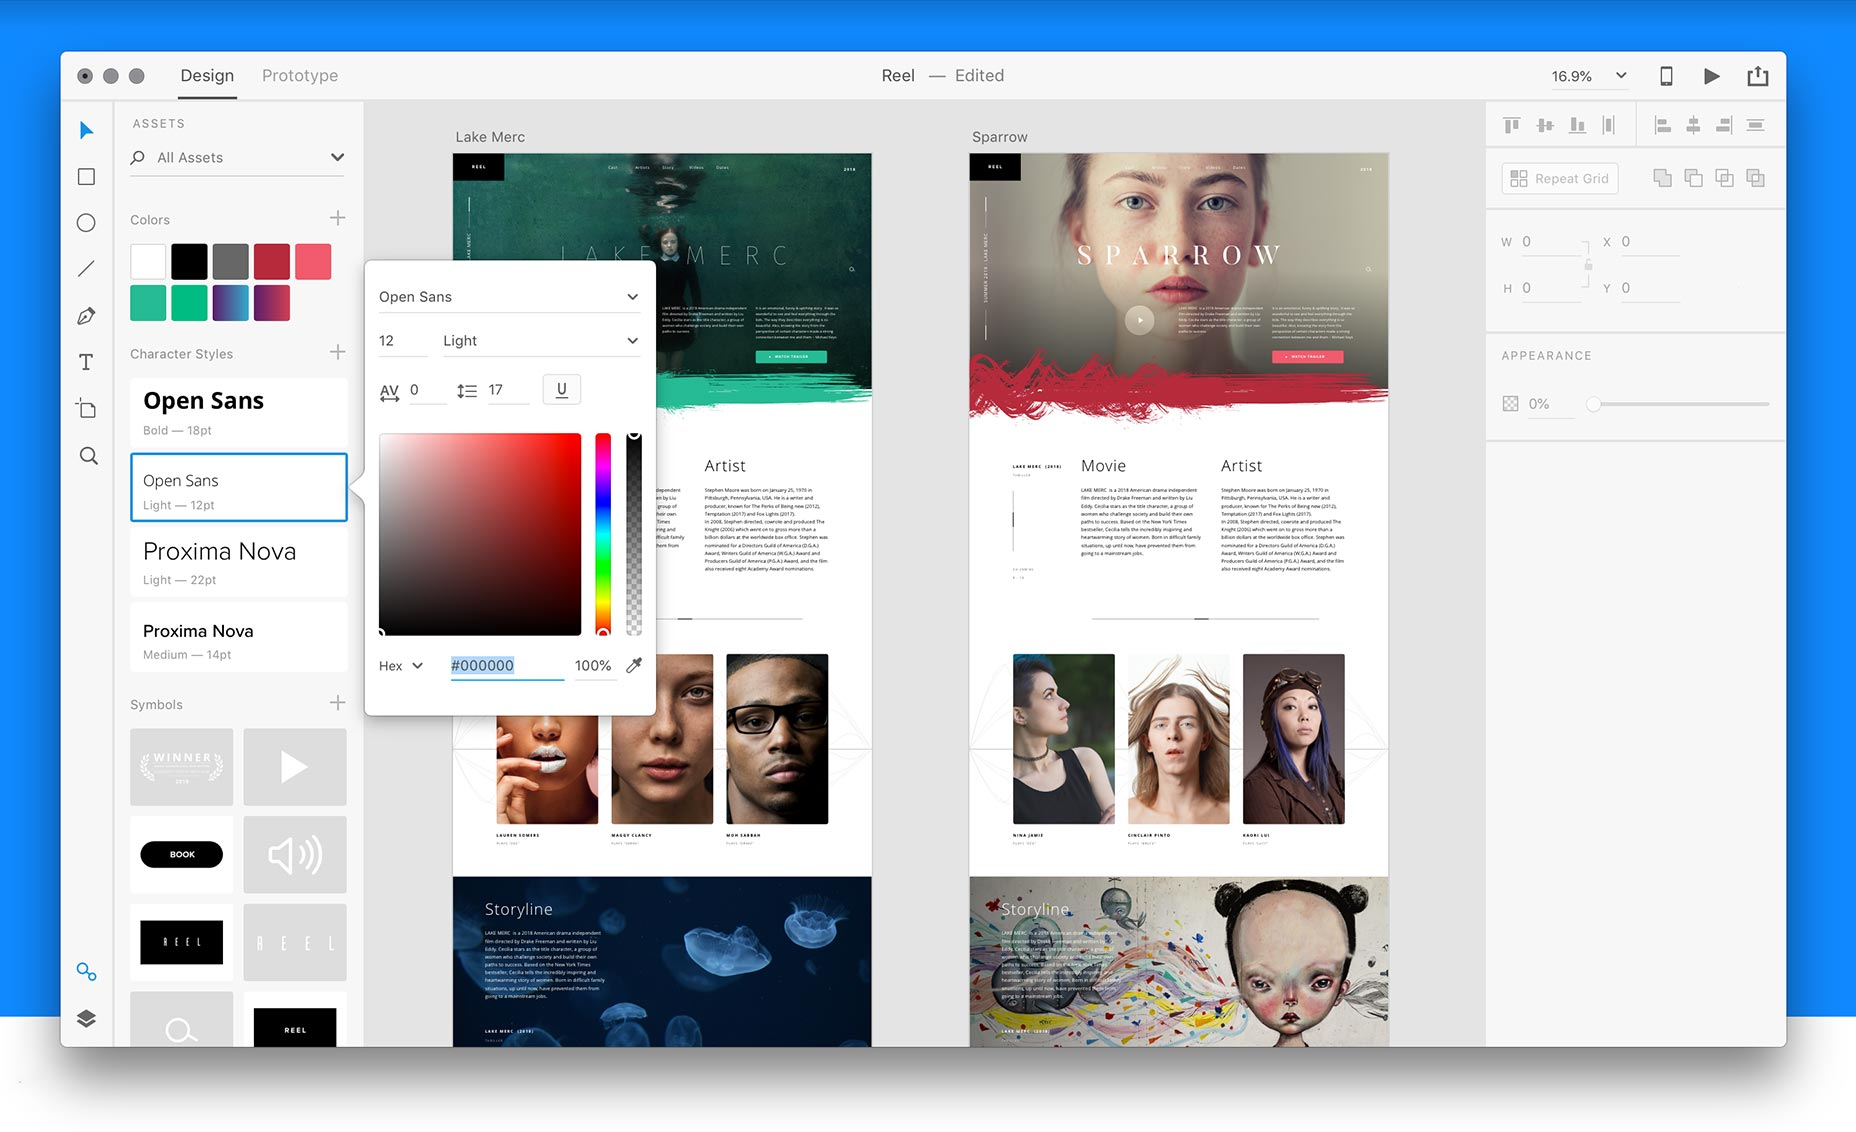 Adobe XD CC is Now Available for Free - Web Design Tips